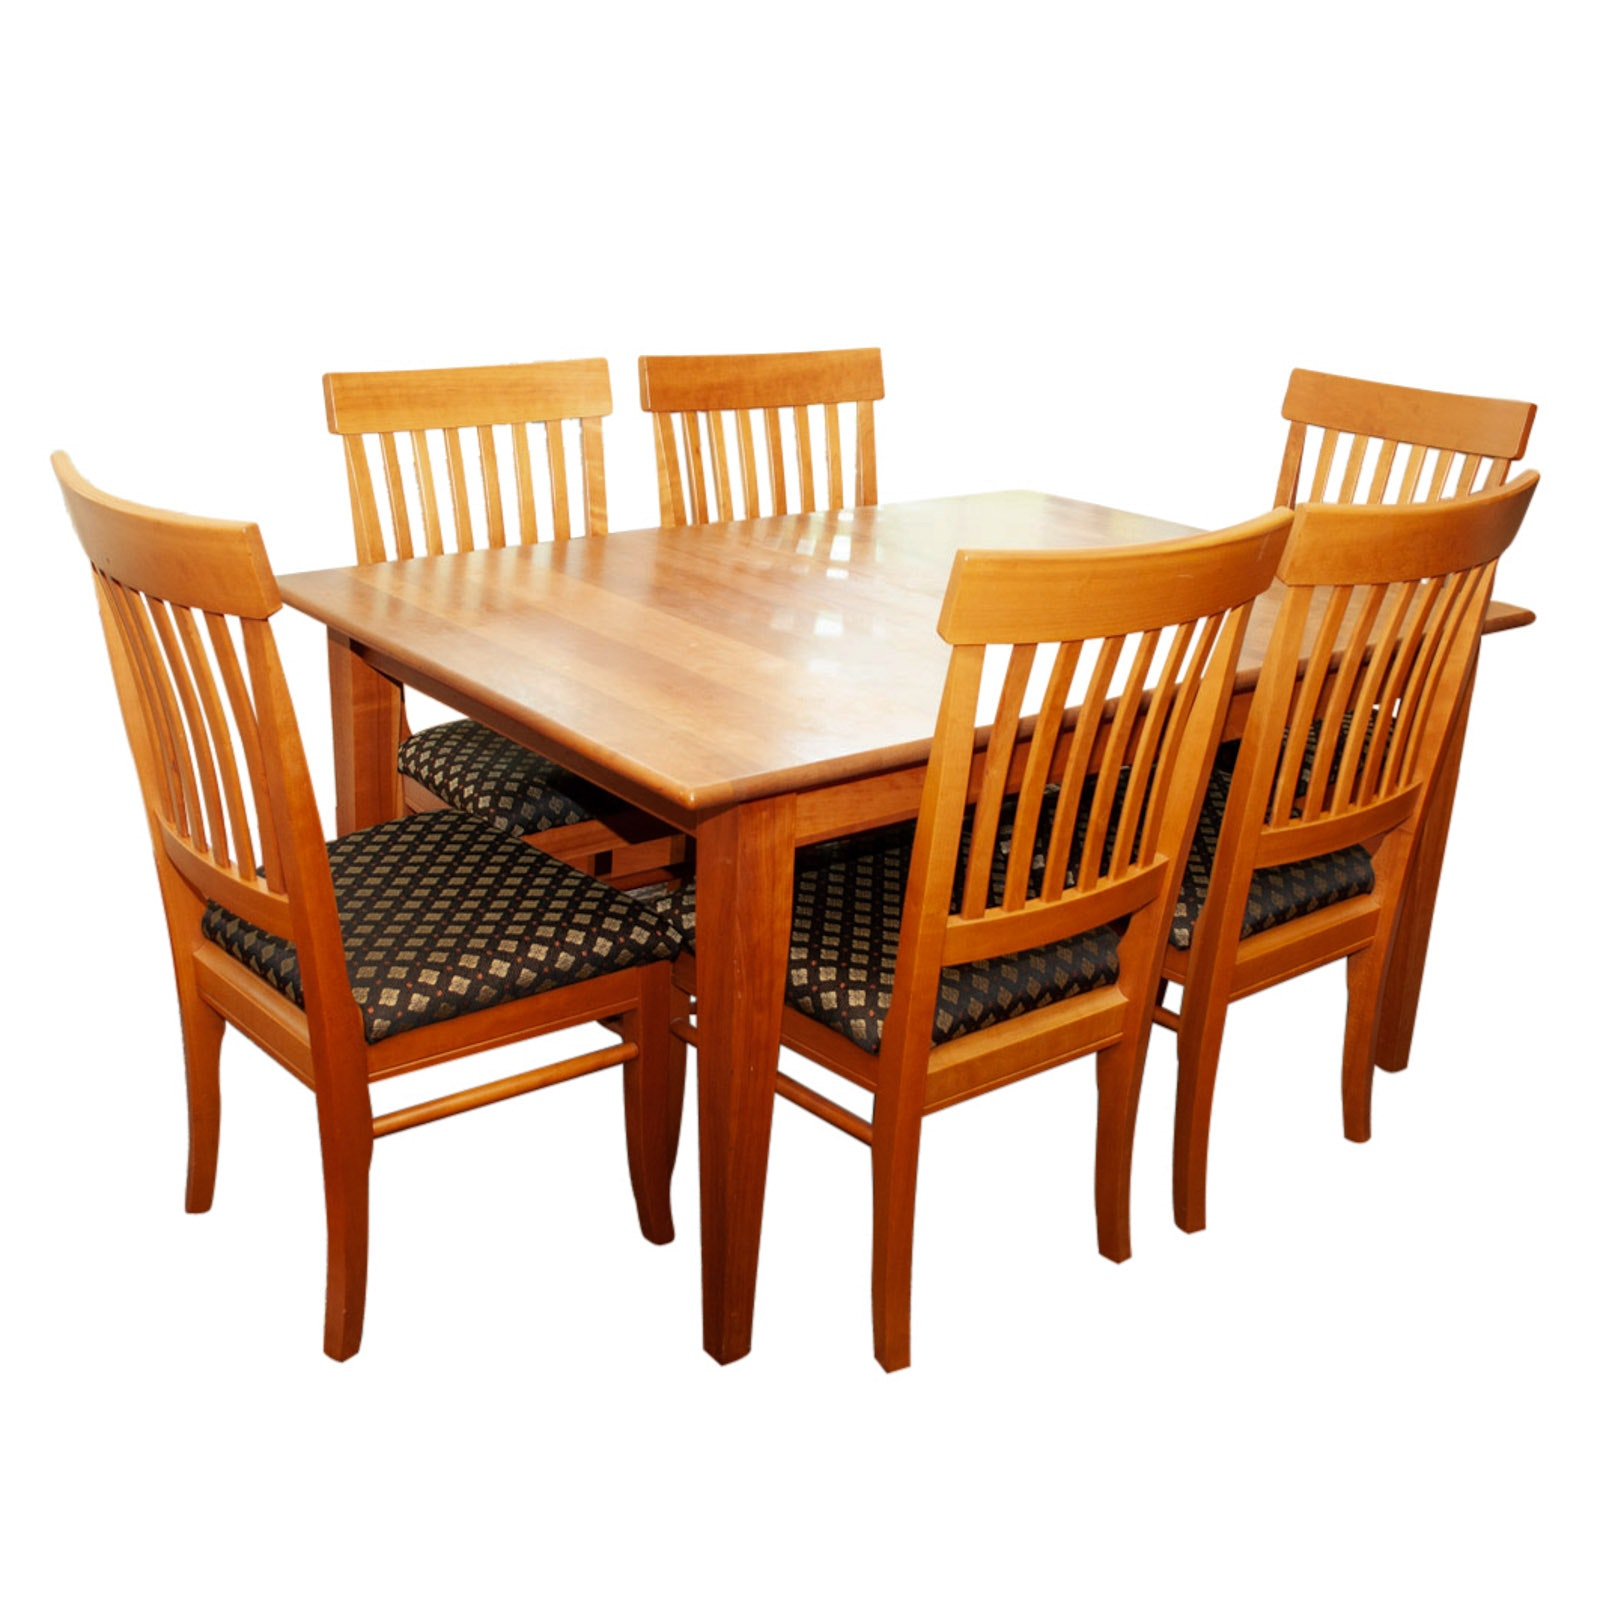 Mission Style Cherry Table with Arhaus Chairs, Late 20th Century